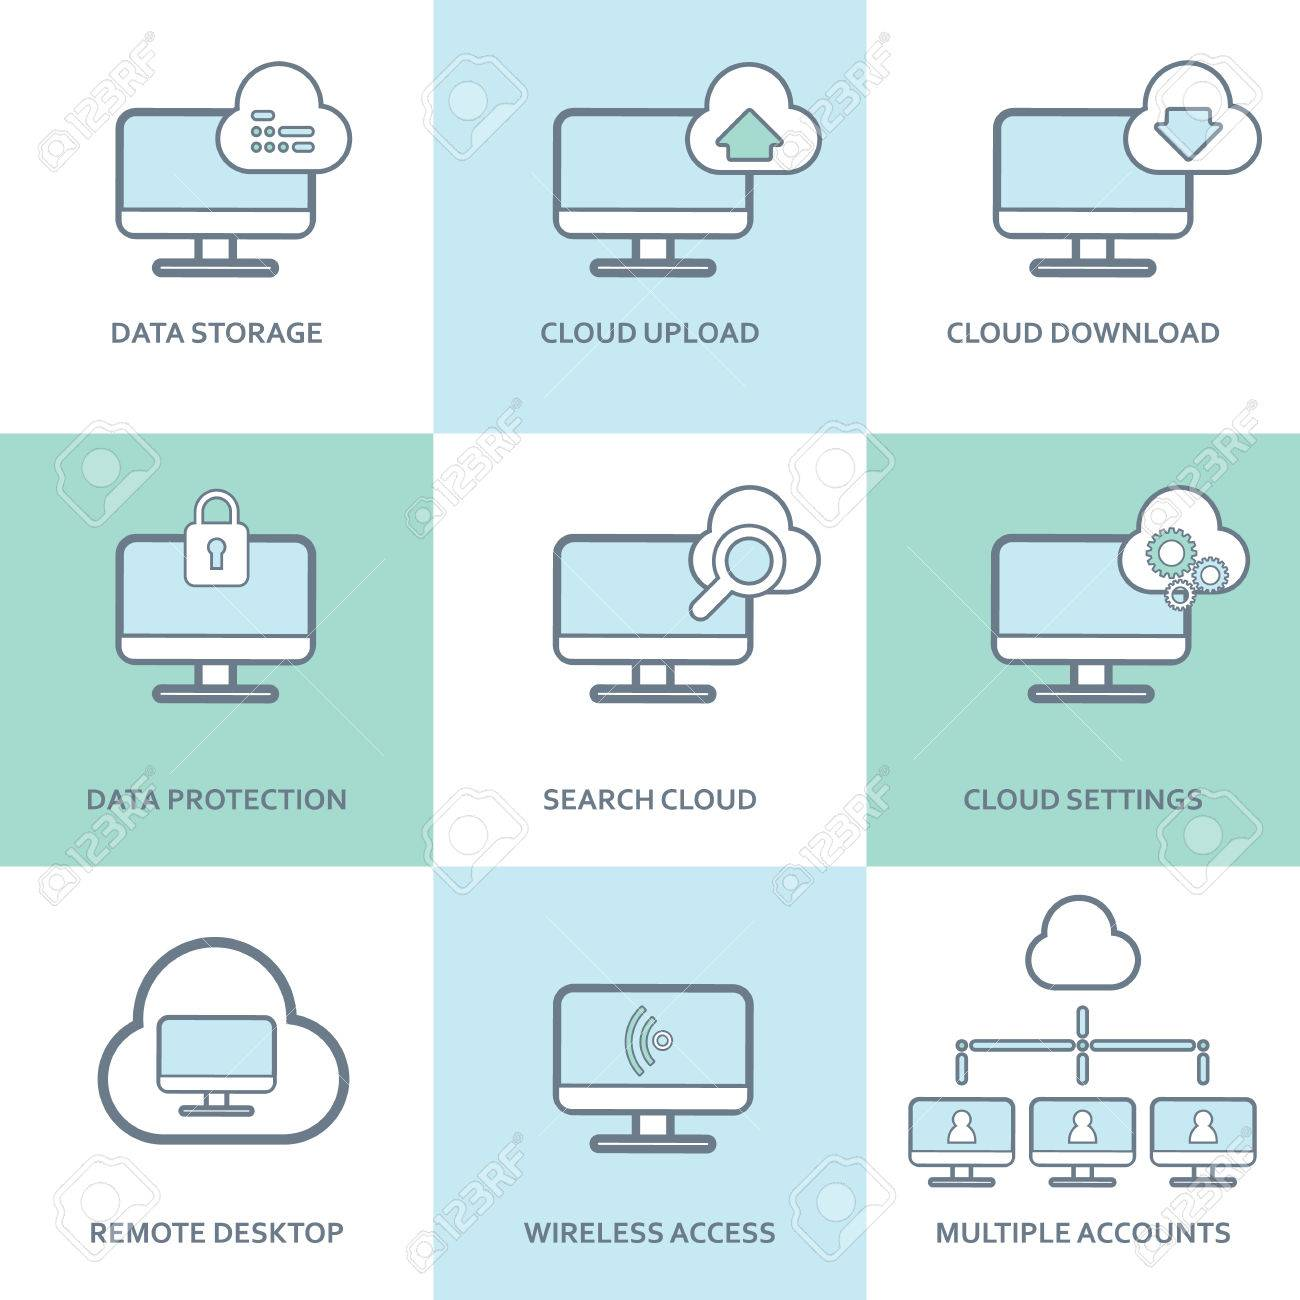 Cloud Computing Icons Collection Set Of Computer Symbols For